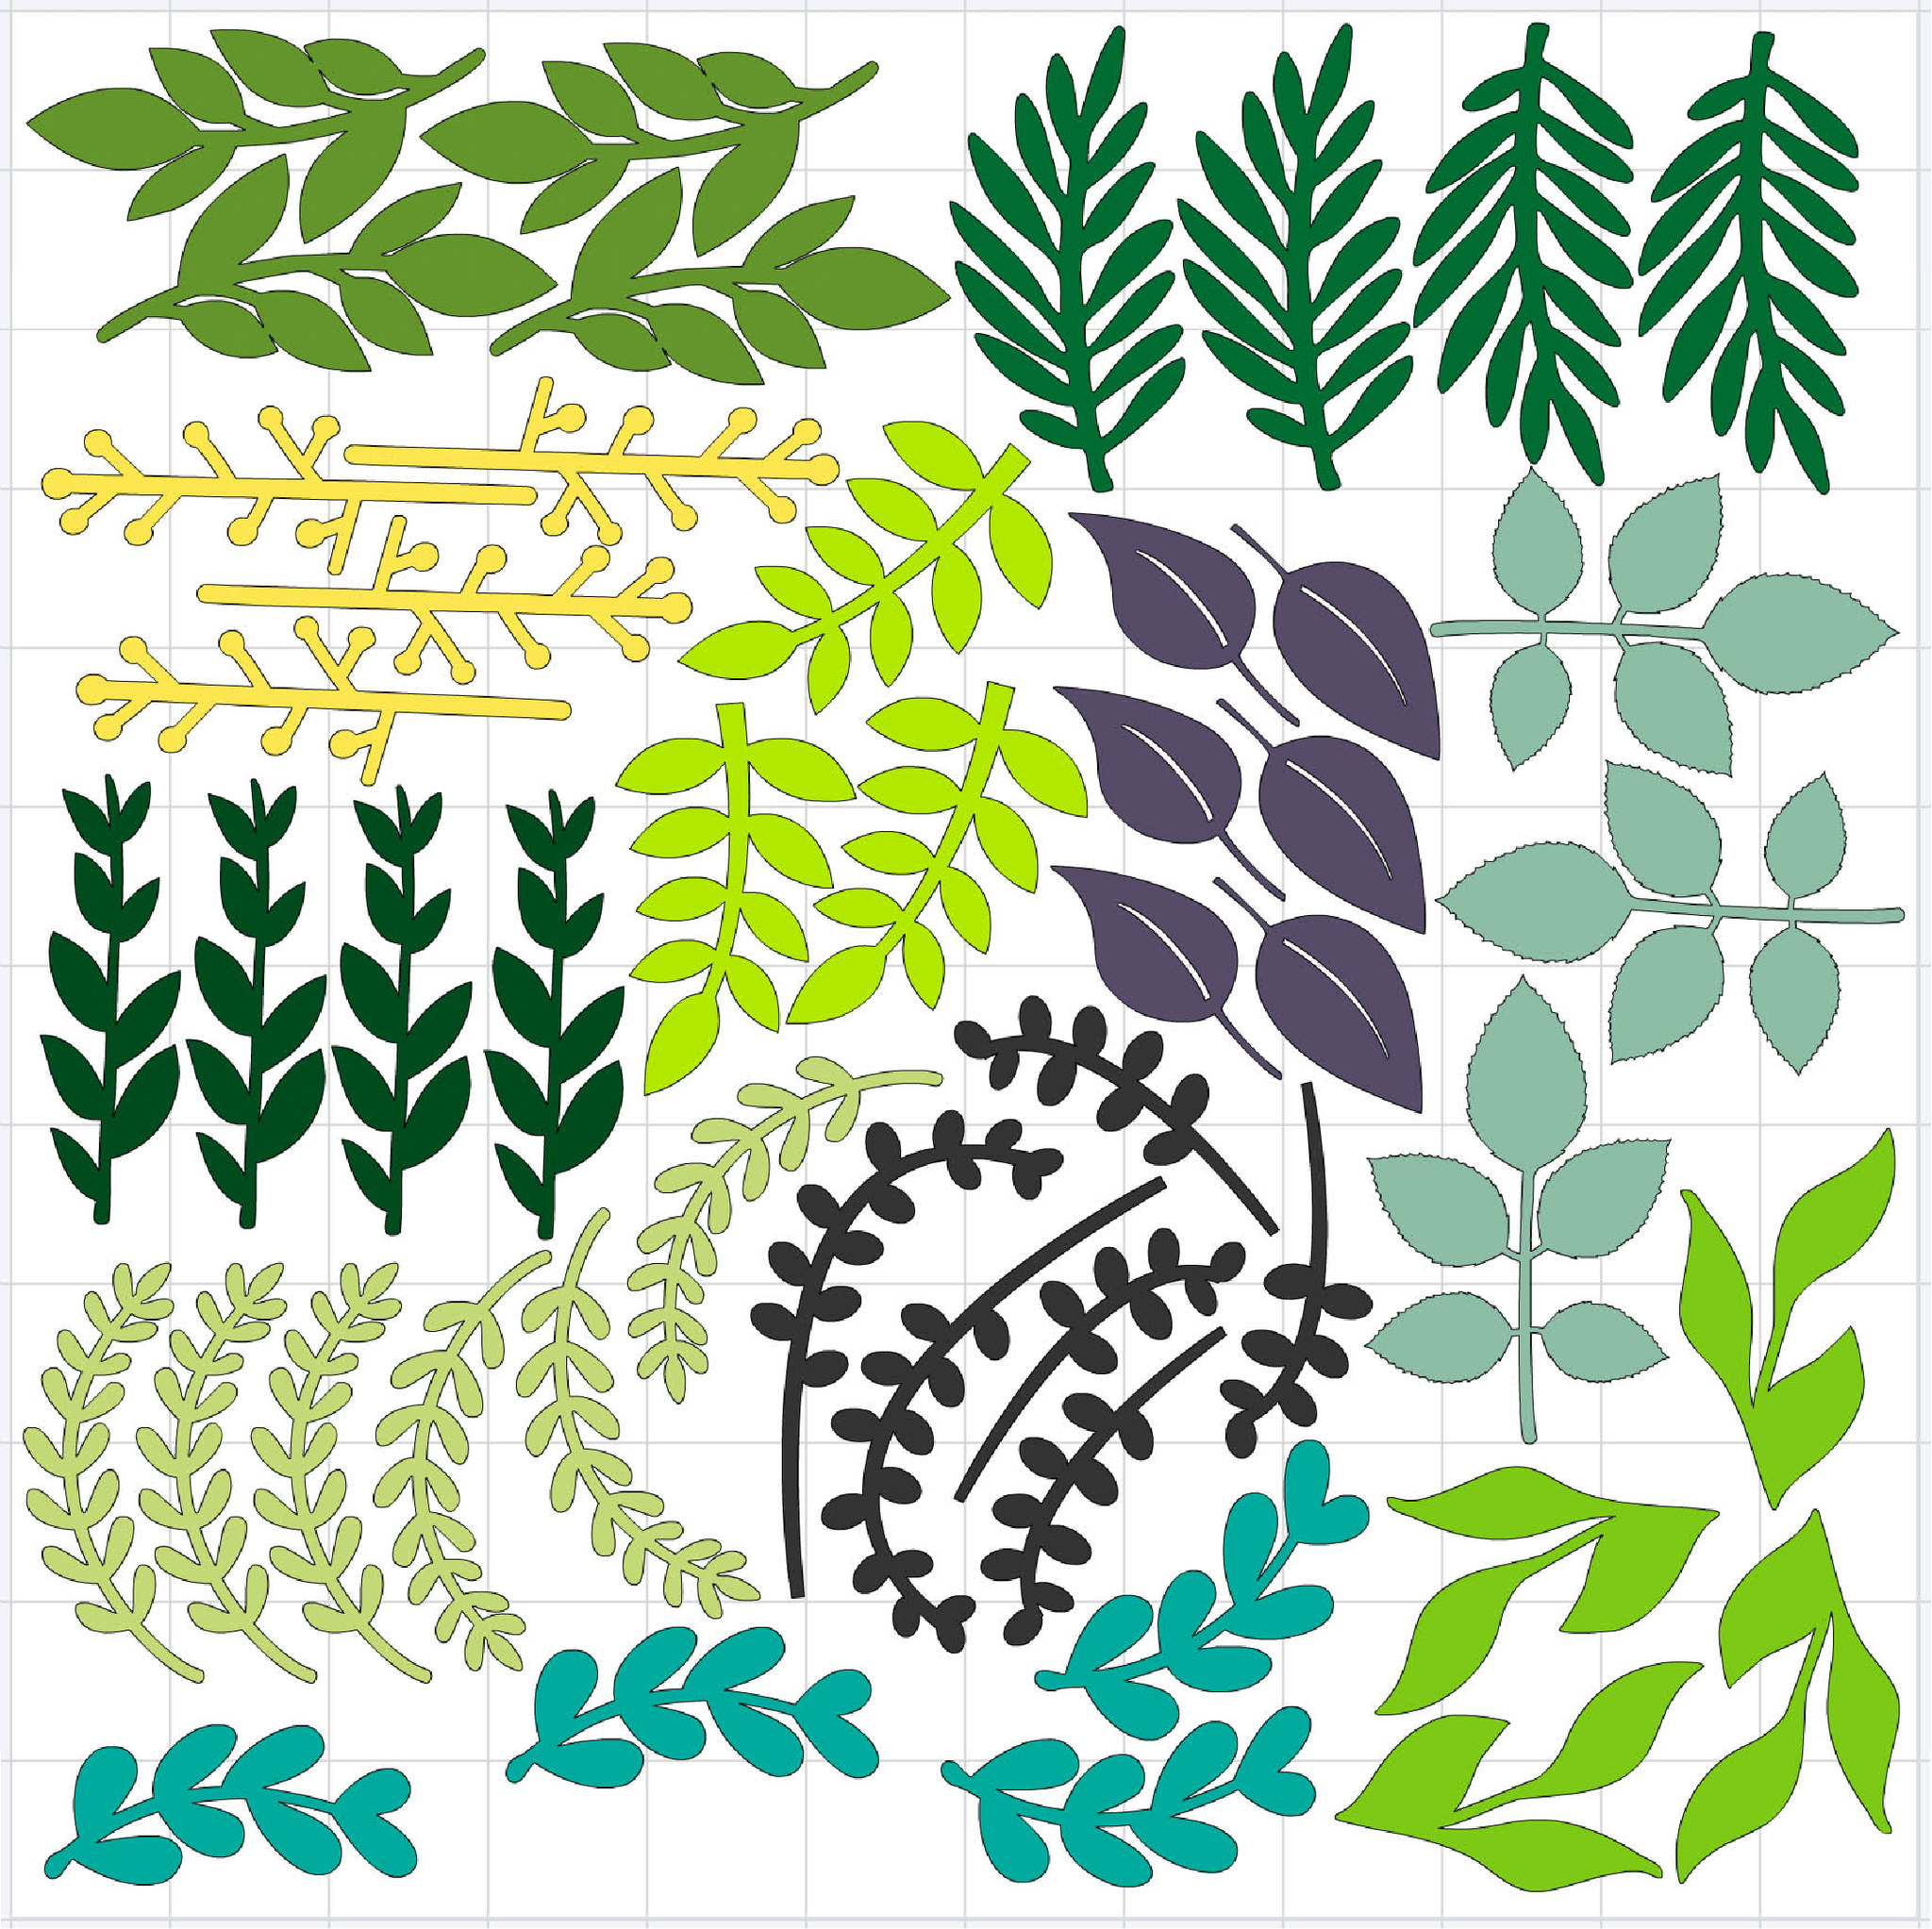 cricut cutting mat for cutting greenery